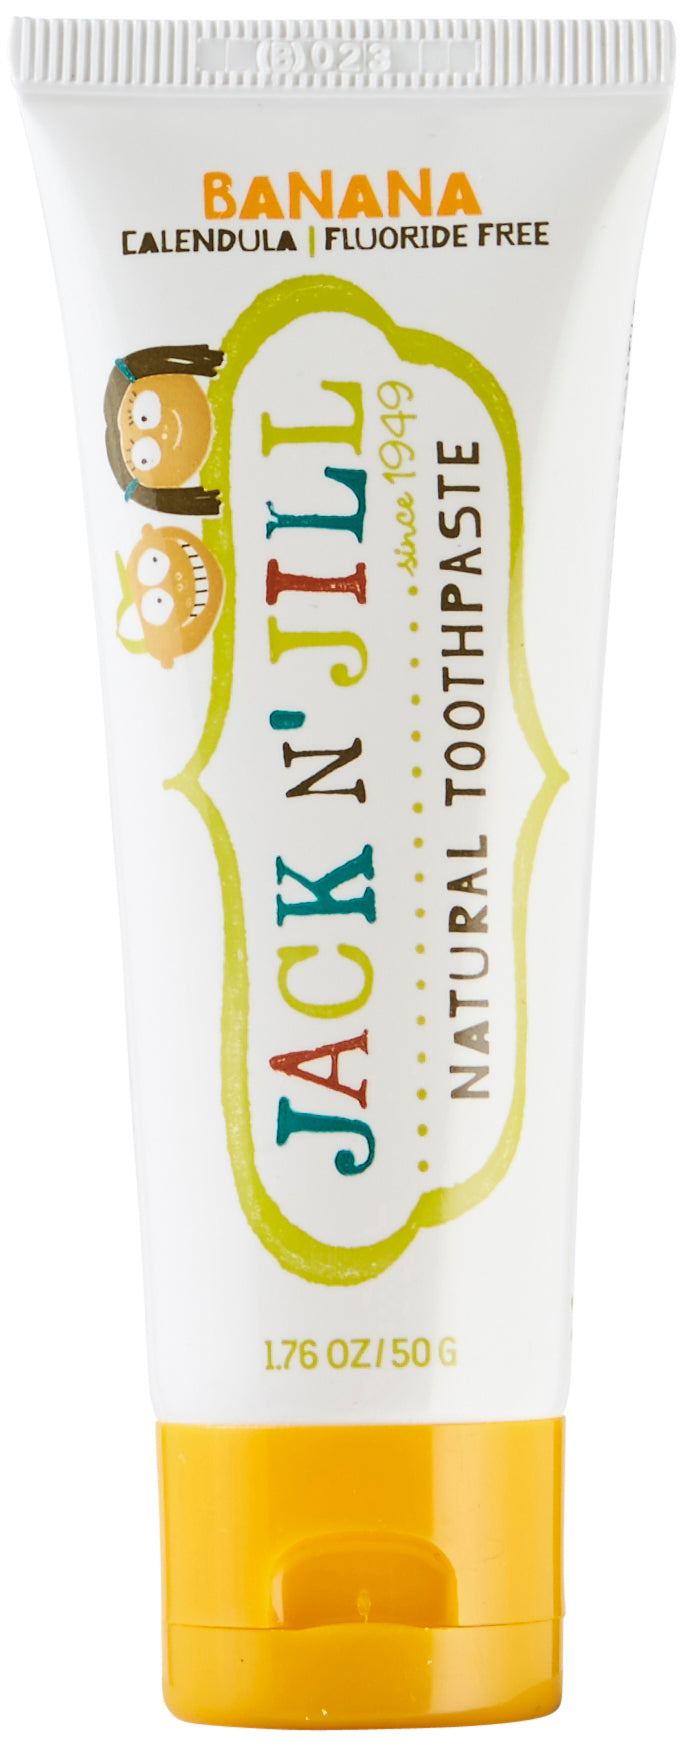 Jack N' Jill Natural Calendula Toothpaste Banana Flavour 50g/1.76oz - Green Monkeys